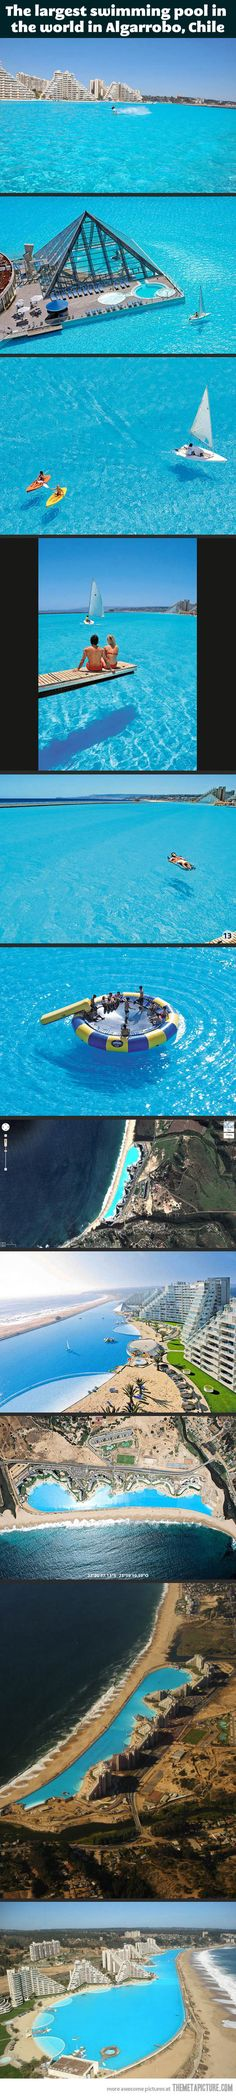 The best swimming pool in the world… I want to go here!!!!